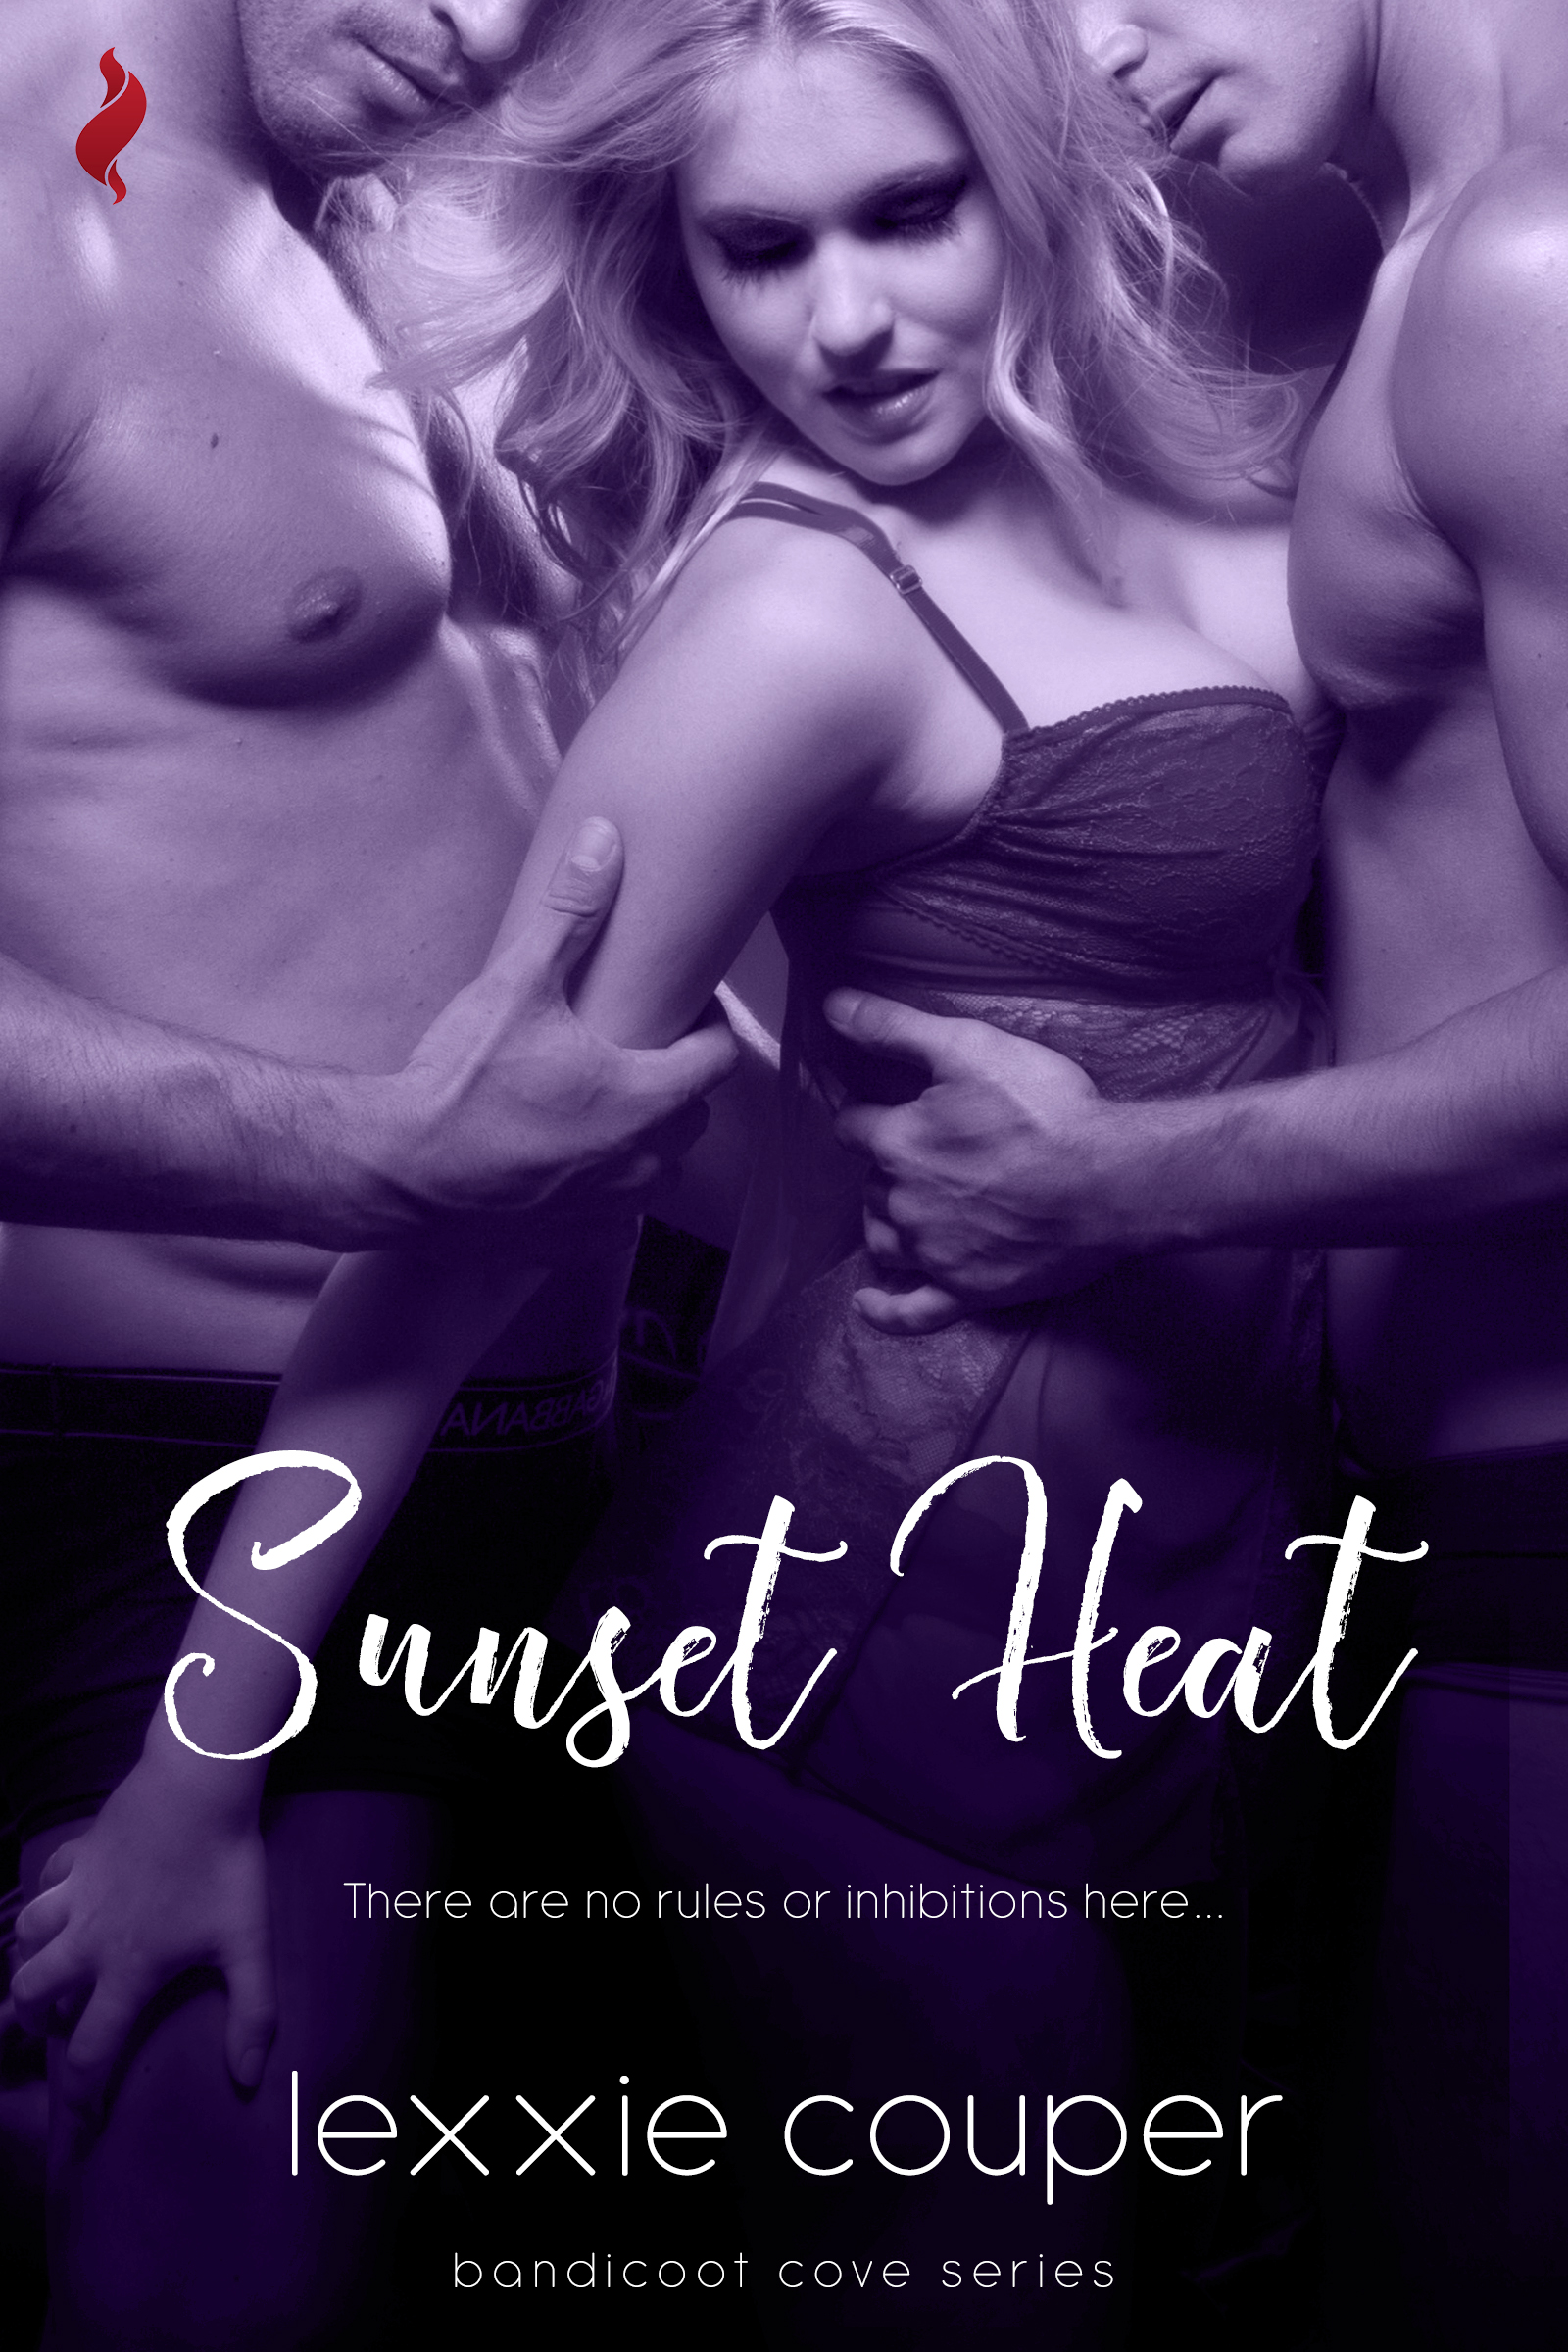 Sunset Heat by Lexxie Couper